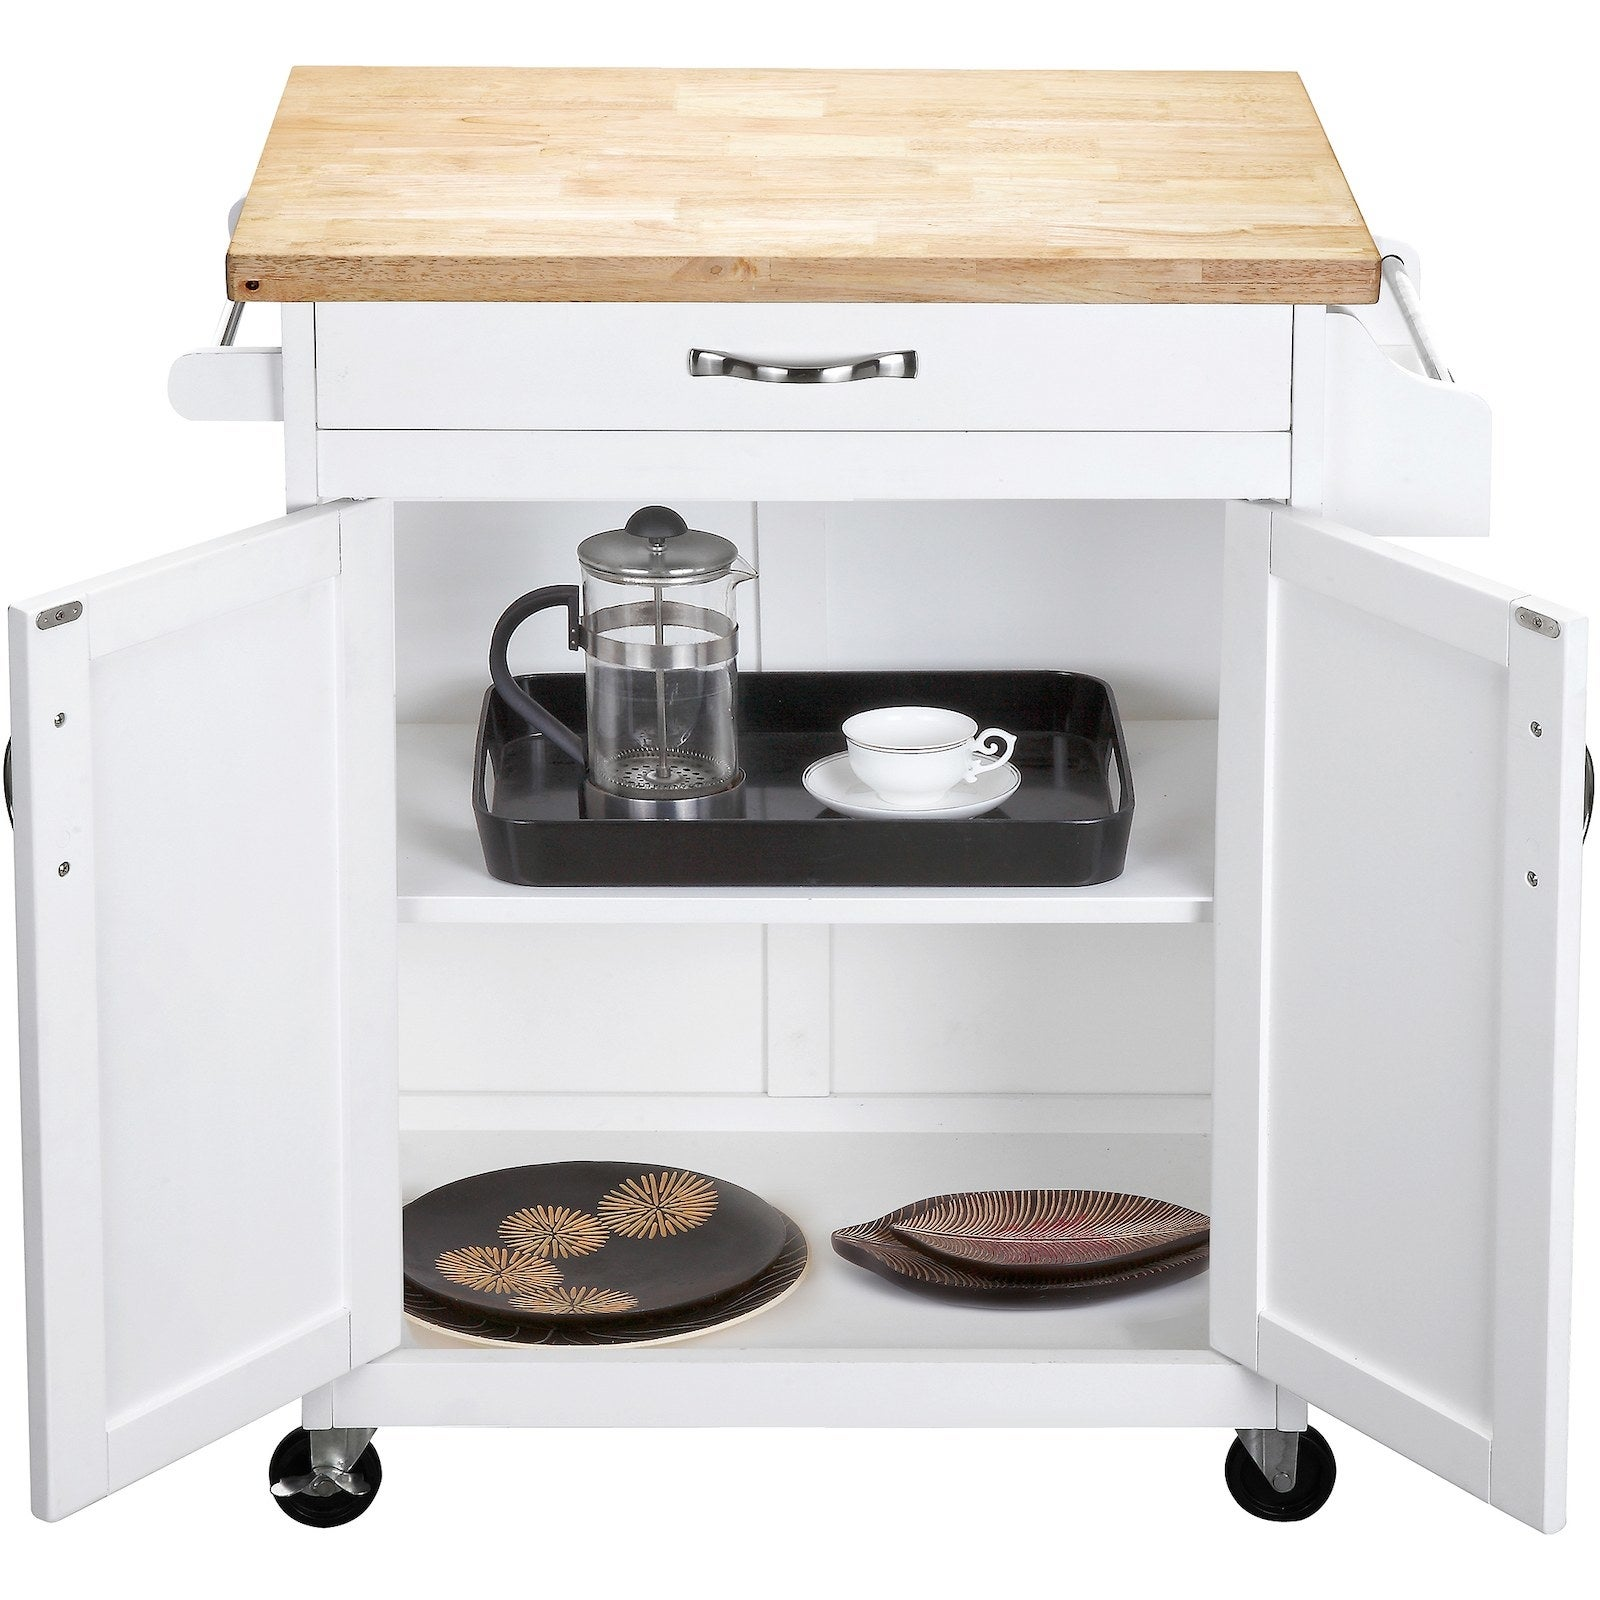 The kitchen island with two interior shelves